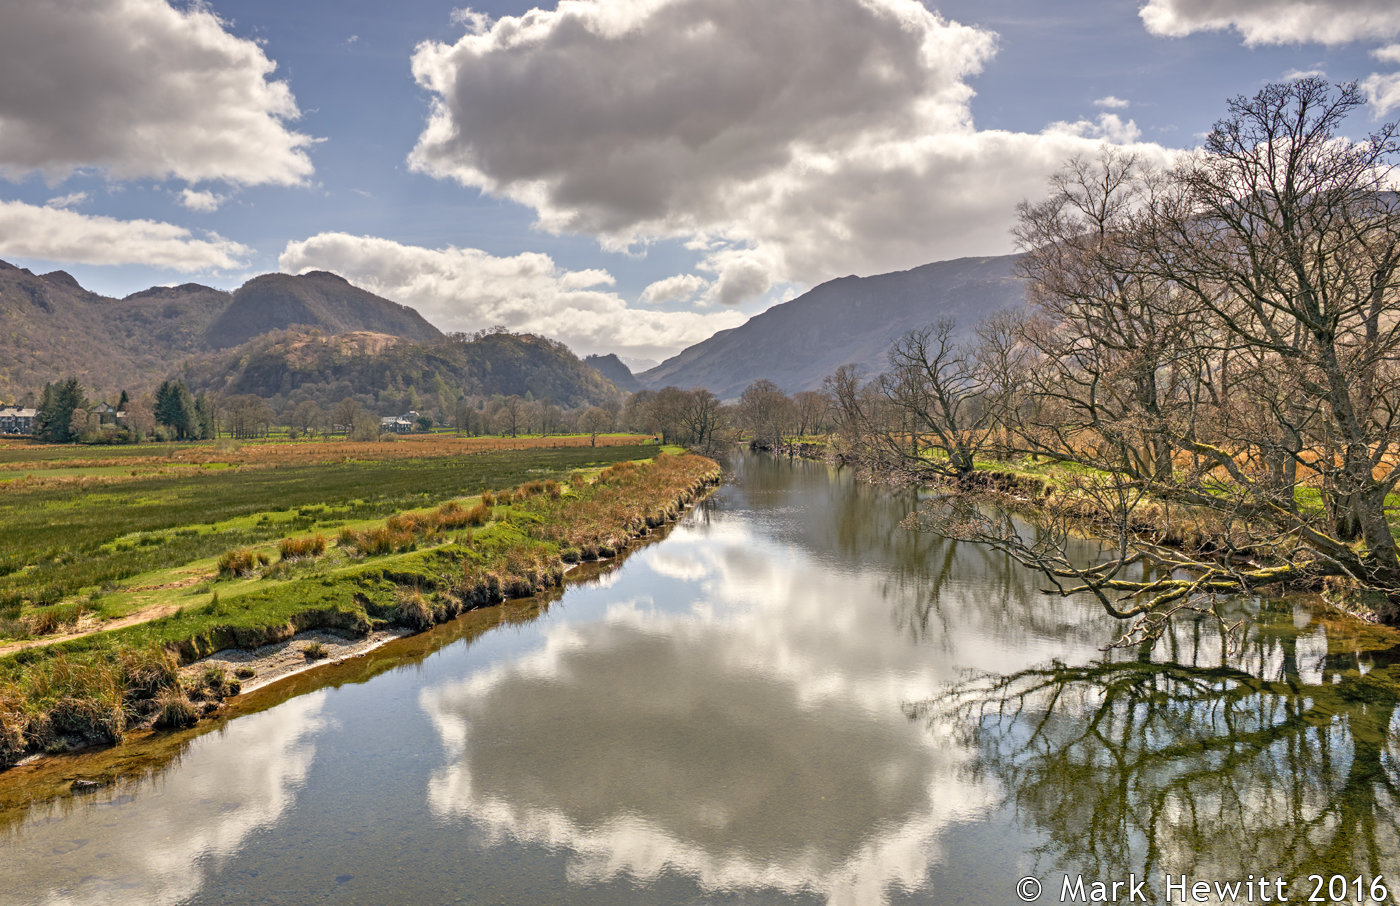 Borrowdale From The Chinese Bridge